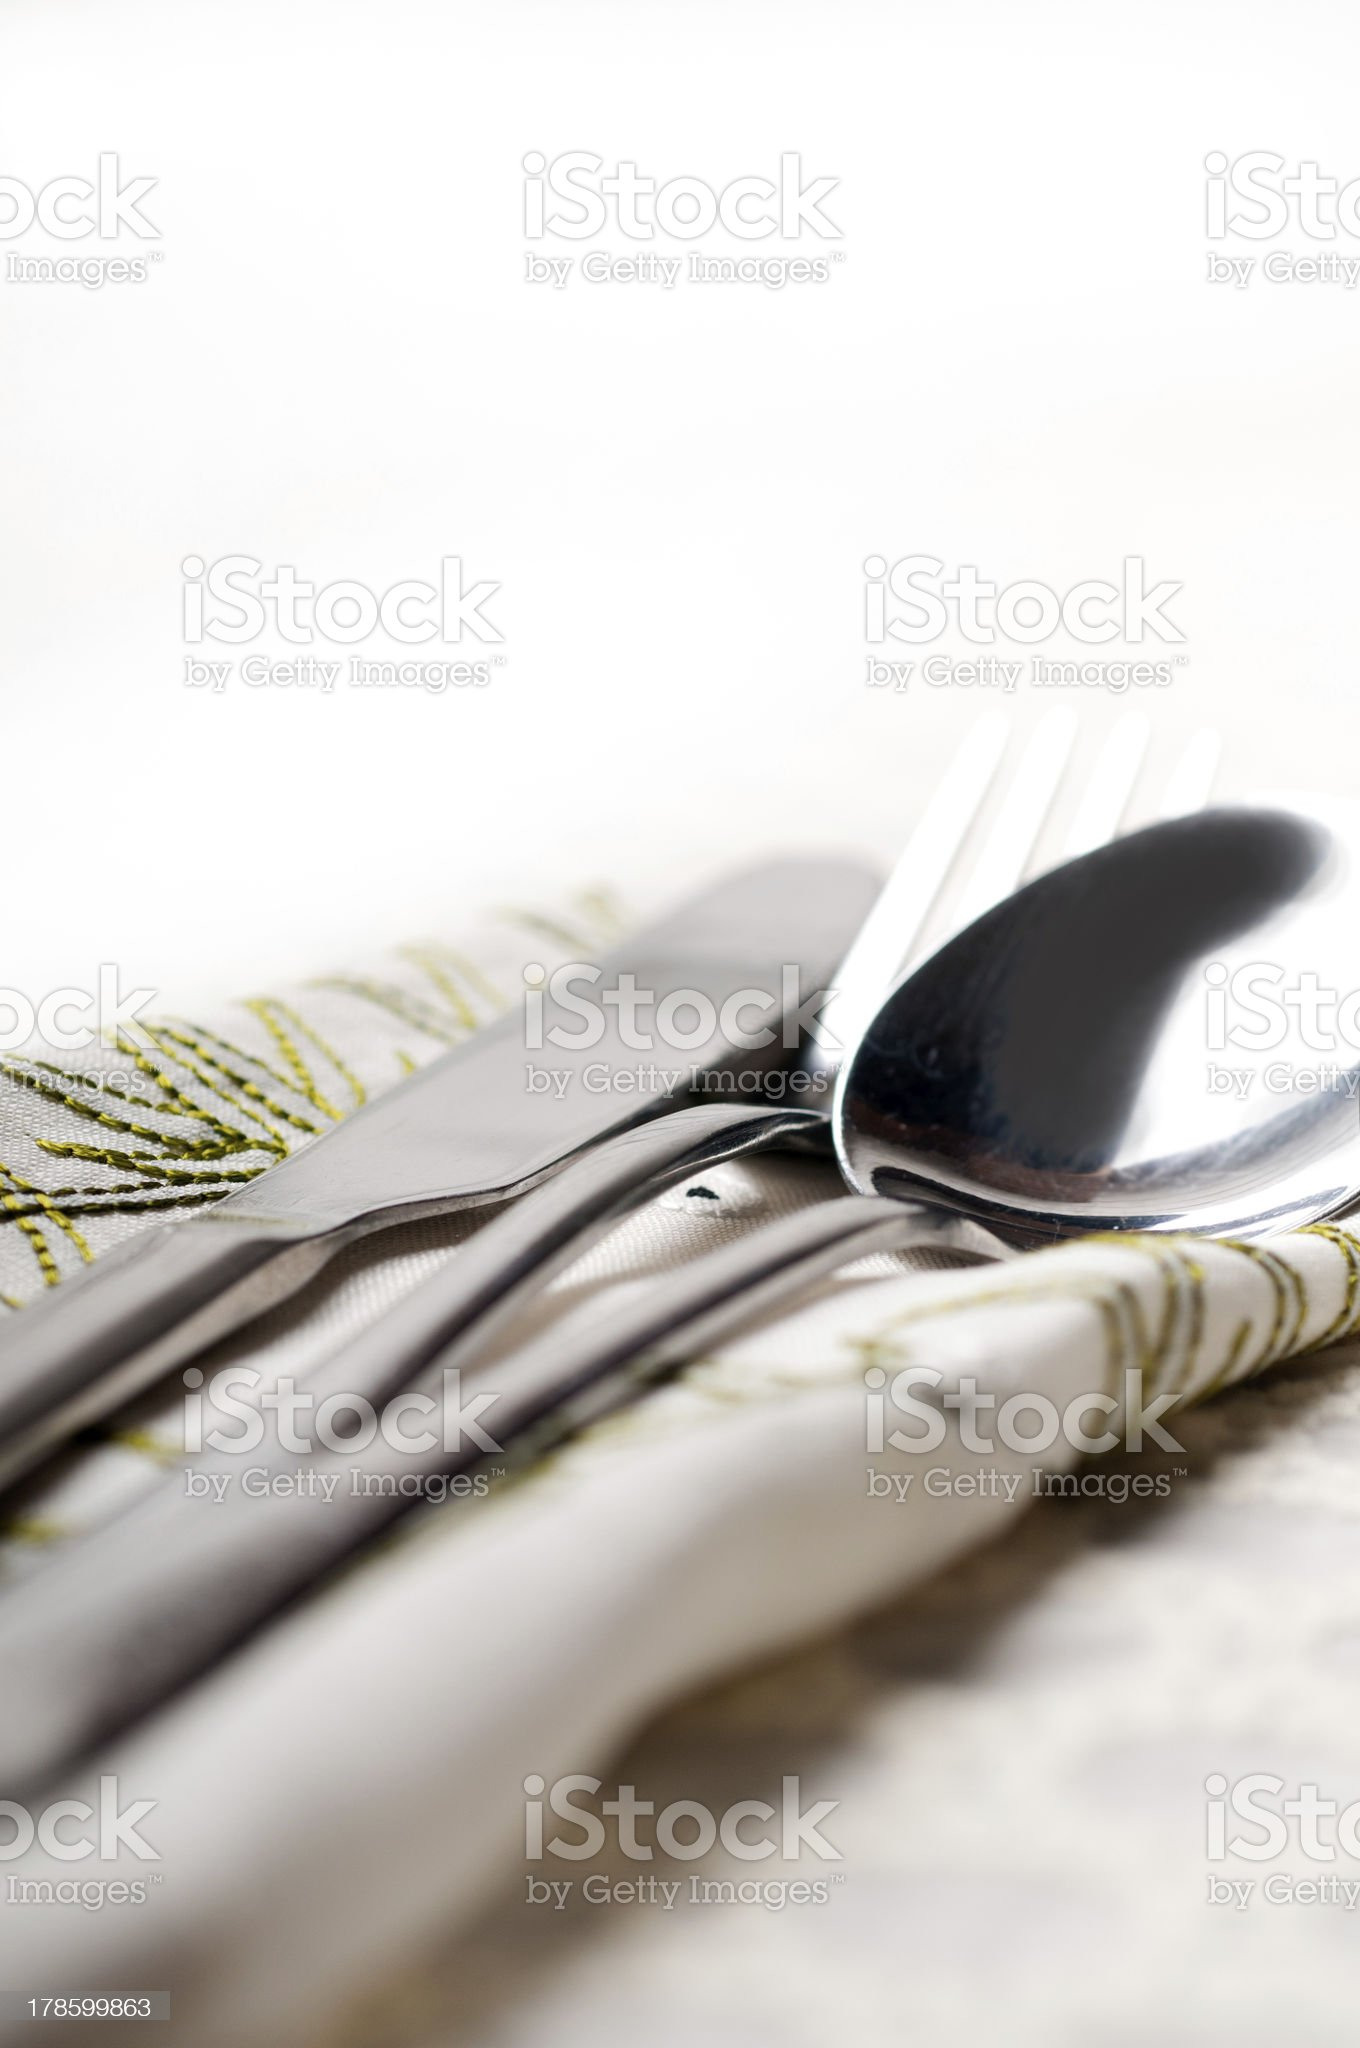 knife fork and spoon macro royalty-free stock photo